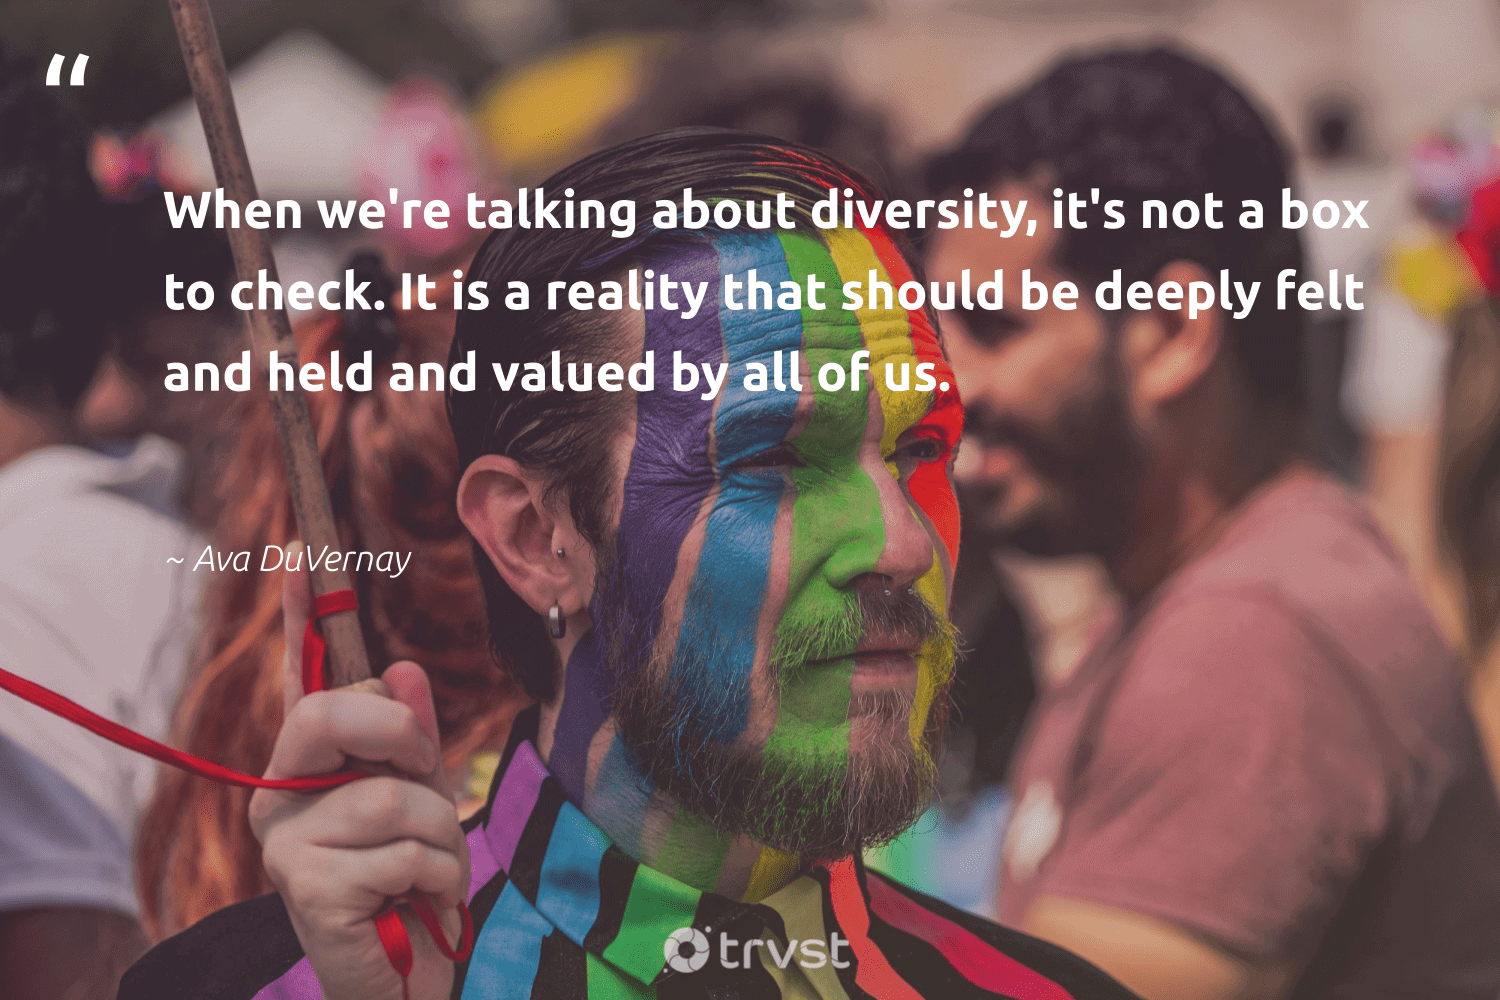 """""""When we're talking about diversity, it's not a box to check. It is a reality that should be deeply felt and held and valued by all of us.""""  - Ava DuVernay #trvst #quotes #diversity #inclusion #representationmatters #bethechange #giveback #ecoconscious #discrimination #makeadifference #socialgood #dotherightthing"""